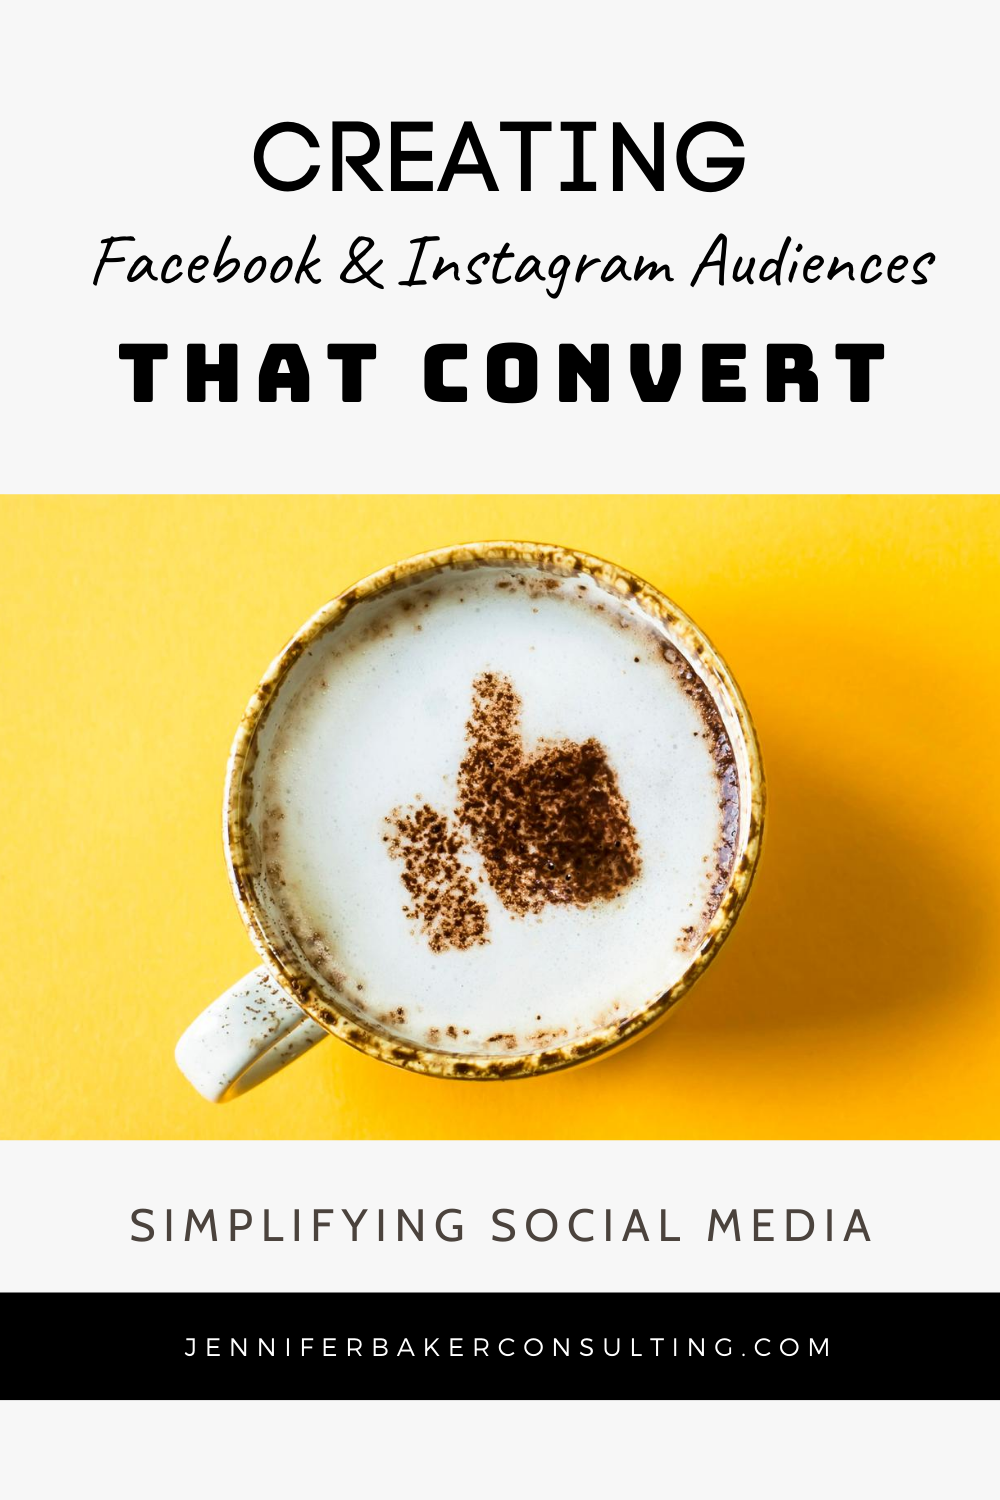 Title of Article: Creating Facebook and Instagram Audiences that Convert